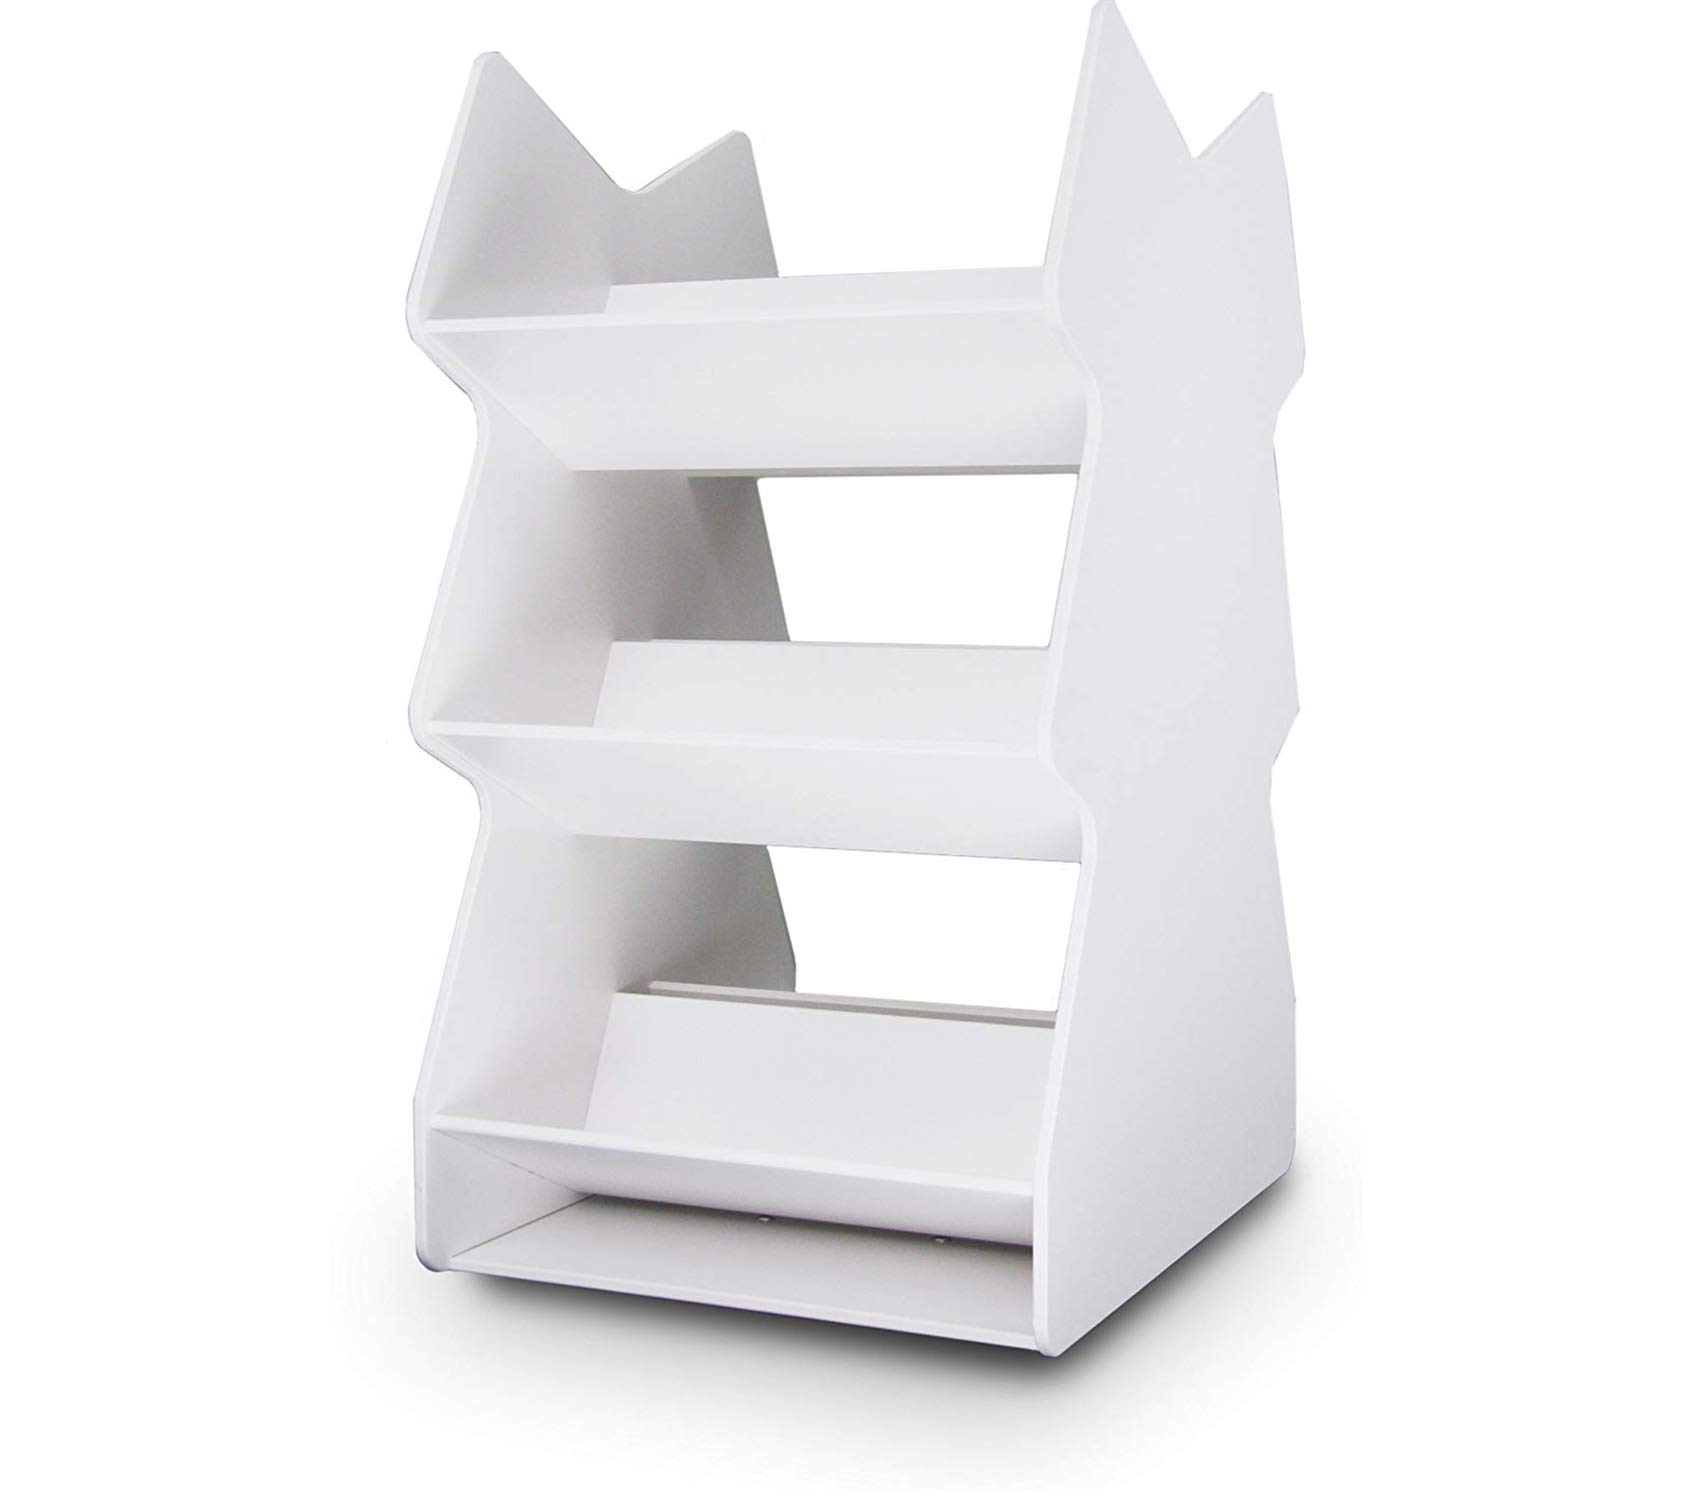 Wood & Style Premium White PVC Triple Rotating Tilted Safety Shelf 8.2lbs 12'' Width x 22.5'' Height x 14.6'' Depth Storage by Wood & Style (Image #1)